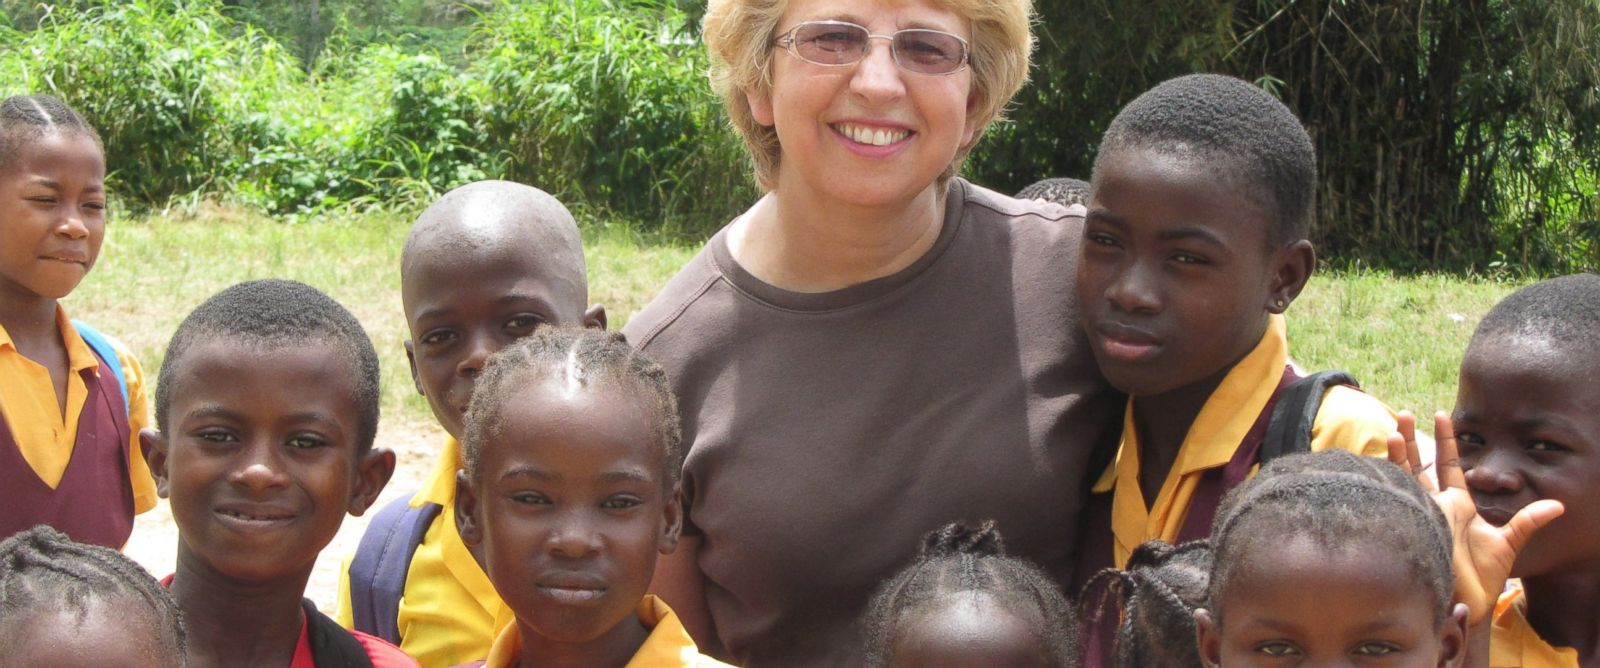 PHOTO: Nancy Writebol, pictured, is said to be in stable condition and will be flown to Emory University Hospital from Liberia on Aug. 5, 2014.